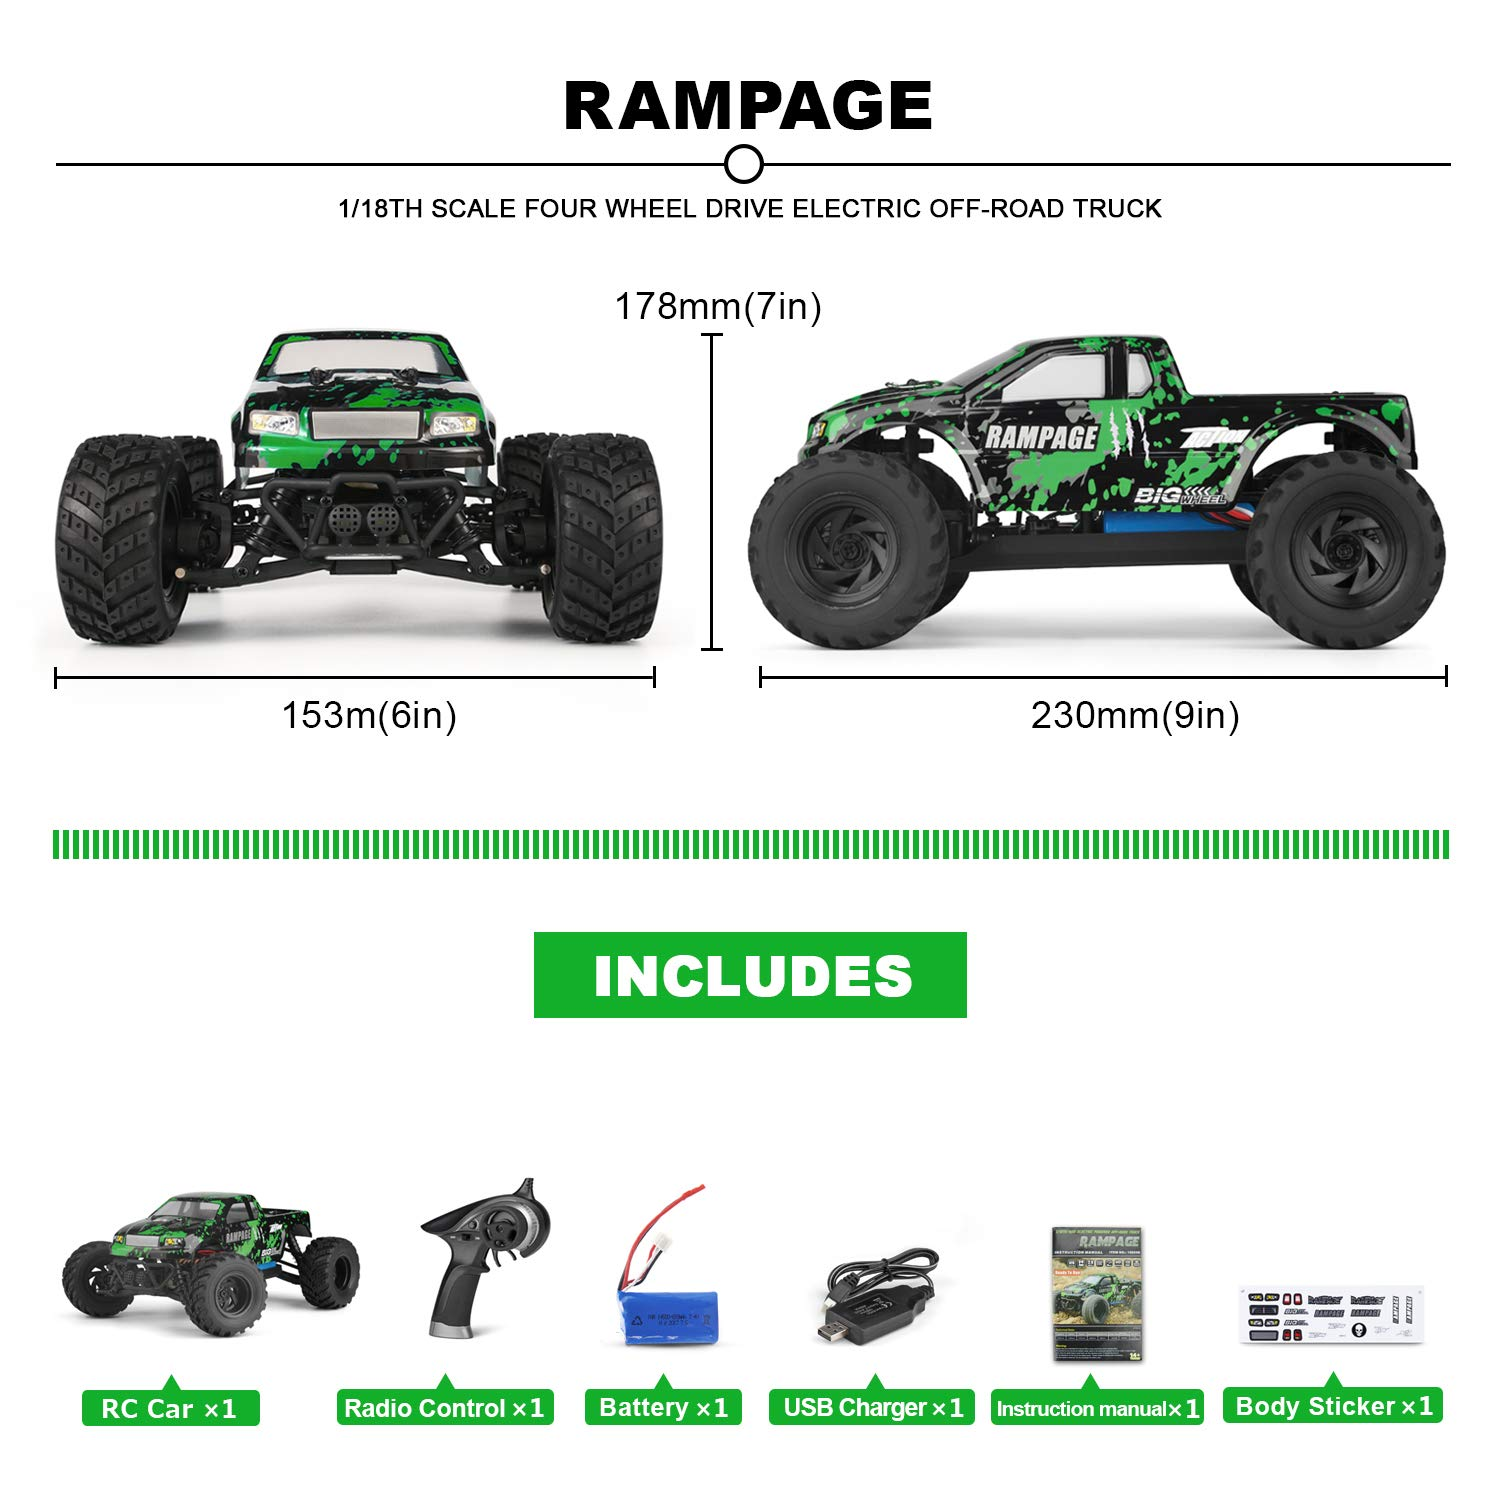 HBX 1:18 Scale All Terrain RC Car 18859E, 30+MPH High Speed 4WD Electric Vehicle with 2.4 GHz Radio Controller, Waterproof Off-Road Truck Included Battery and Charger by BBM HOBBY (Image #2)